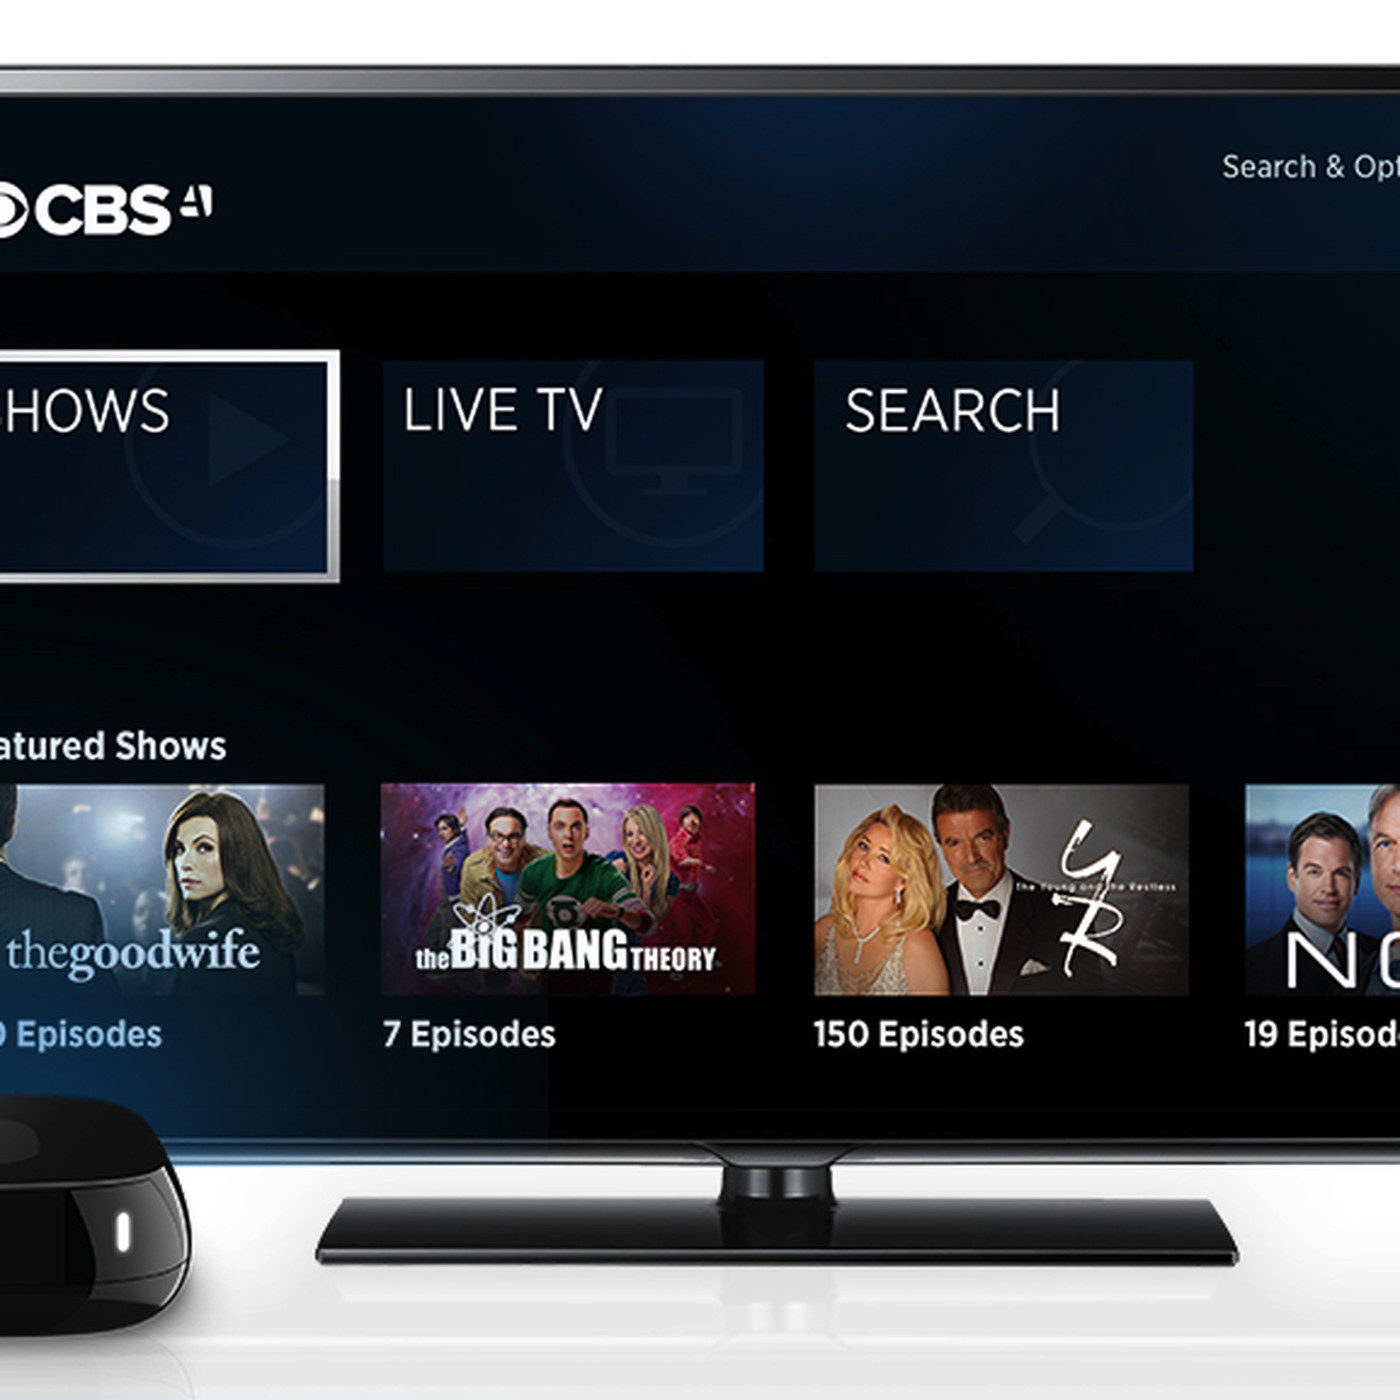 CBS' internet TV service is now available on Roku - The Verge